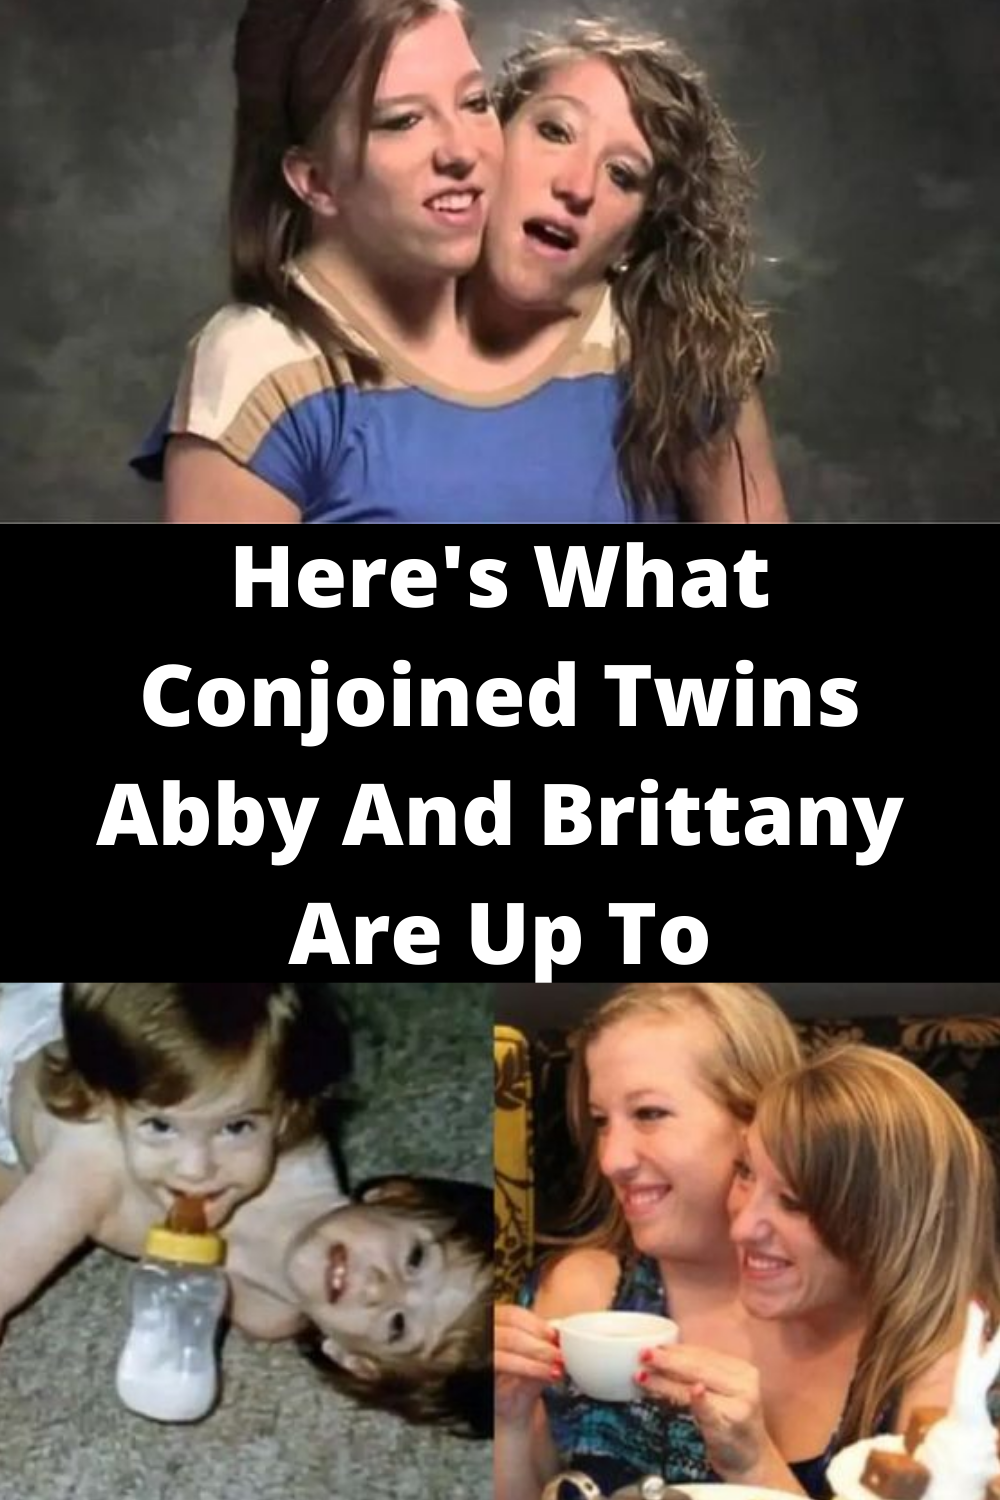 They Ve Spent 28 Years Conjoined Now Abby And Brittany Want To Share What S Next For Them Conjoined Twins Oprah Winfrey Show Gym Workout Tips